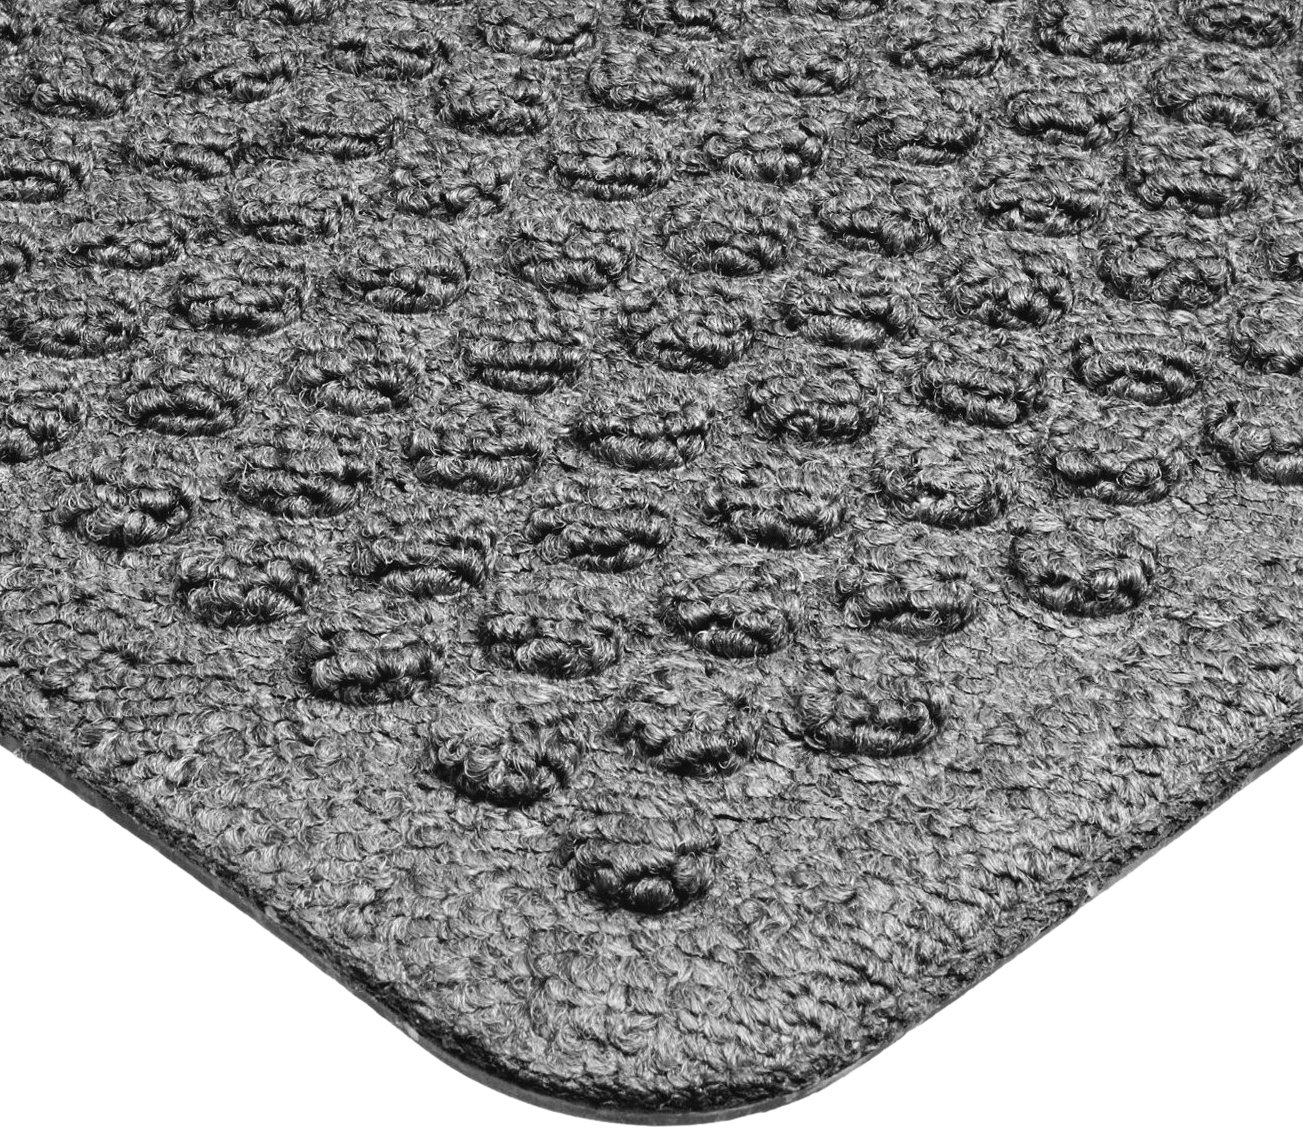 Notrax 150 Aqua Trap Entrance Mat, for Main Entranceways and Heavy Traffic Areas, 2' Width x 3' Length x 3/8'' Thickness, Gray